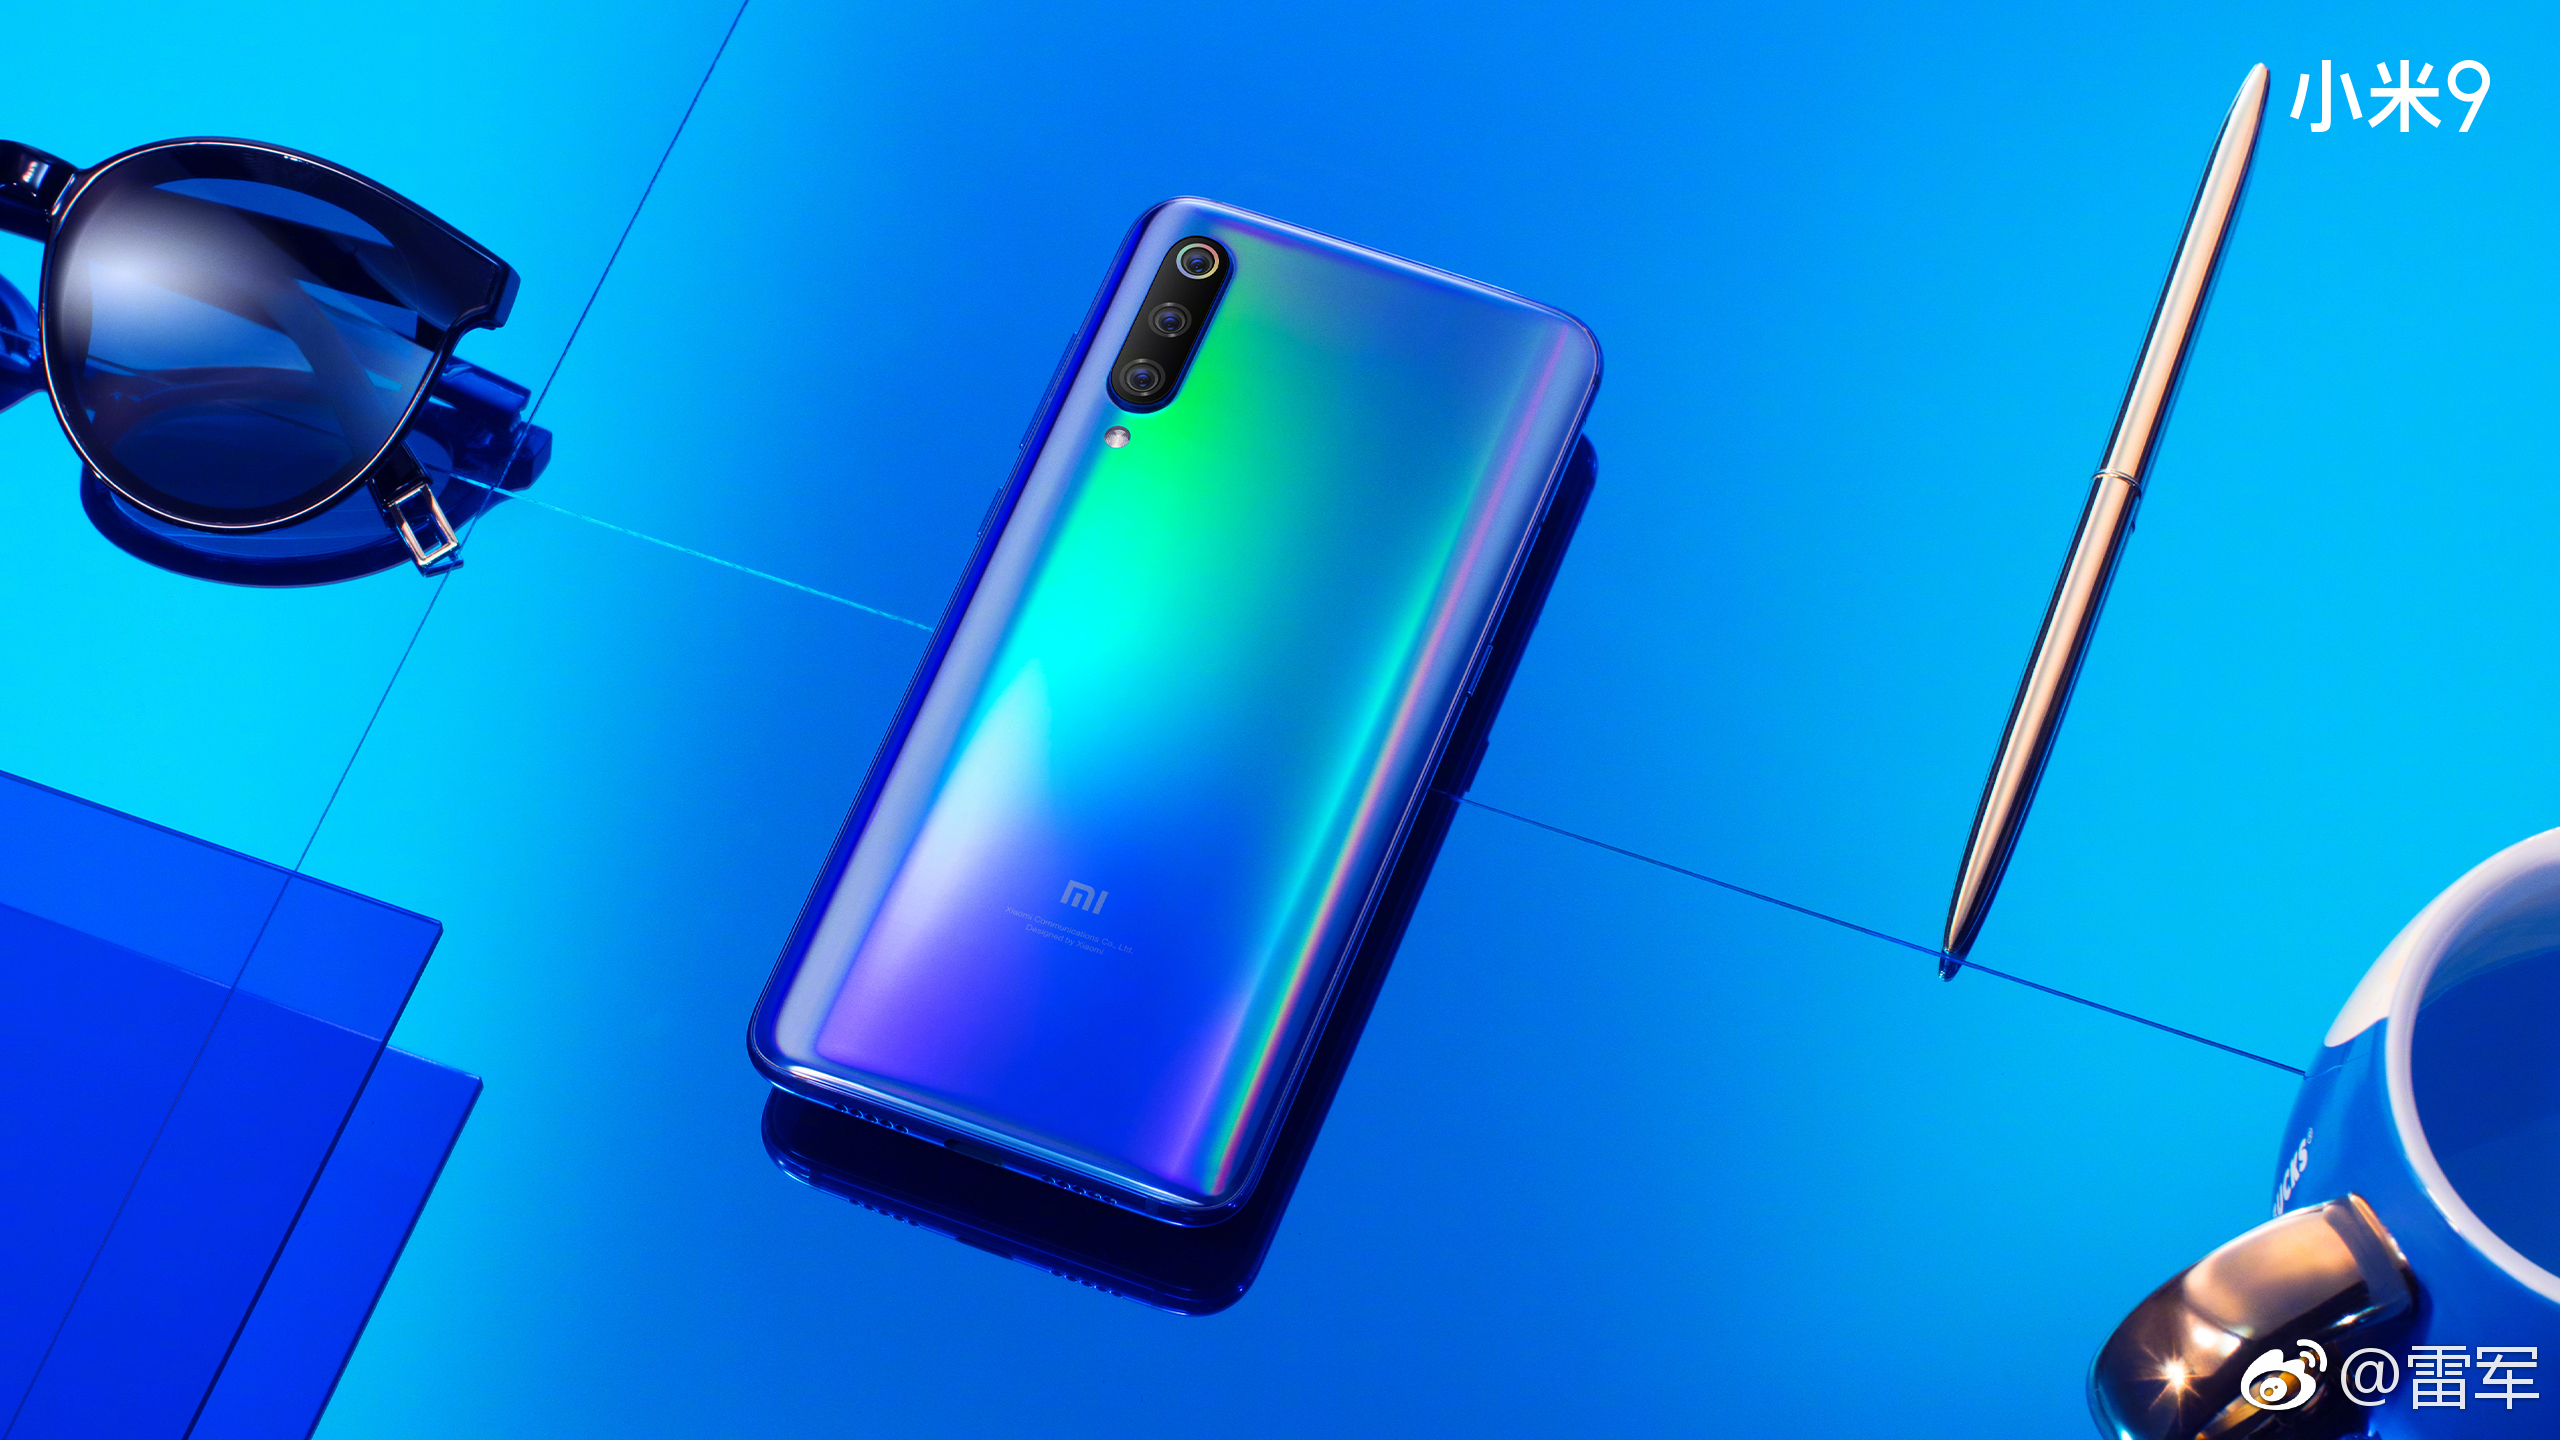 Xiaomi reveals the Mi 9 ahead of launch